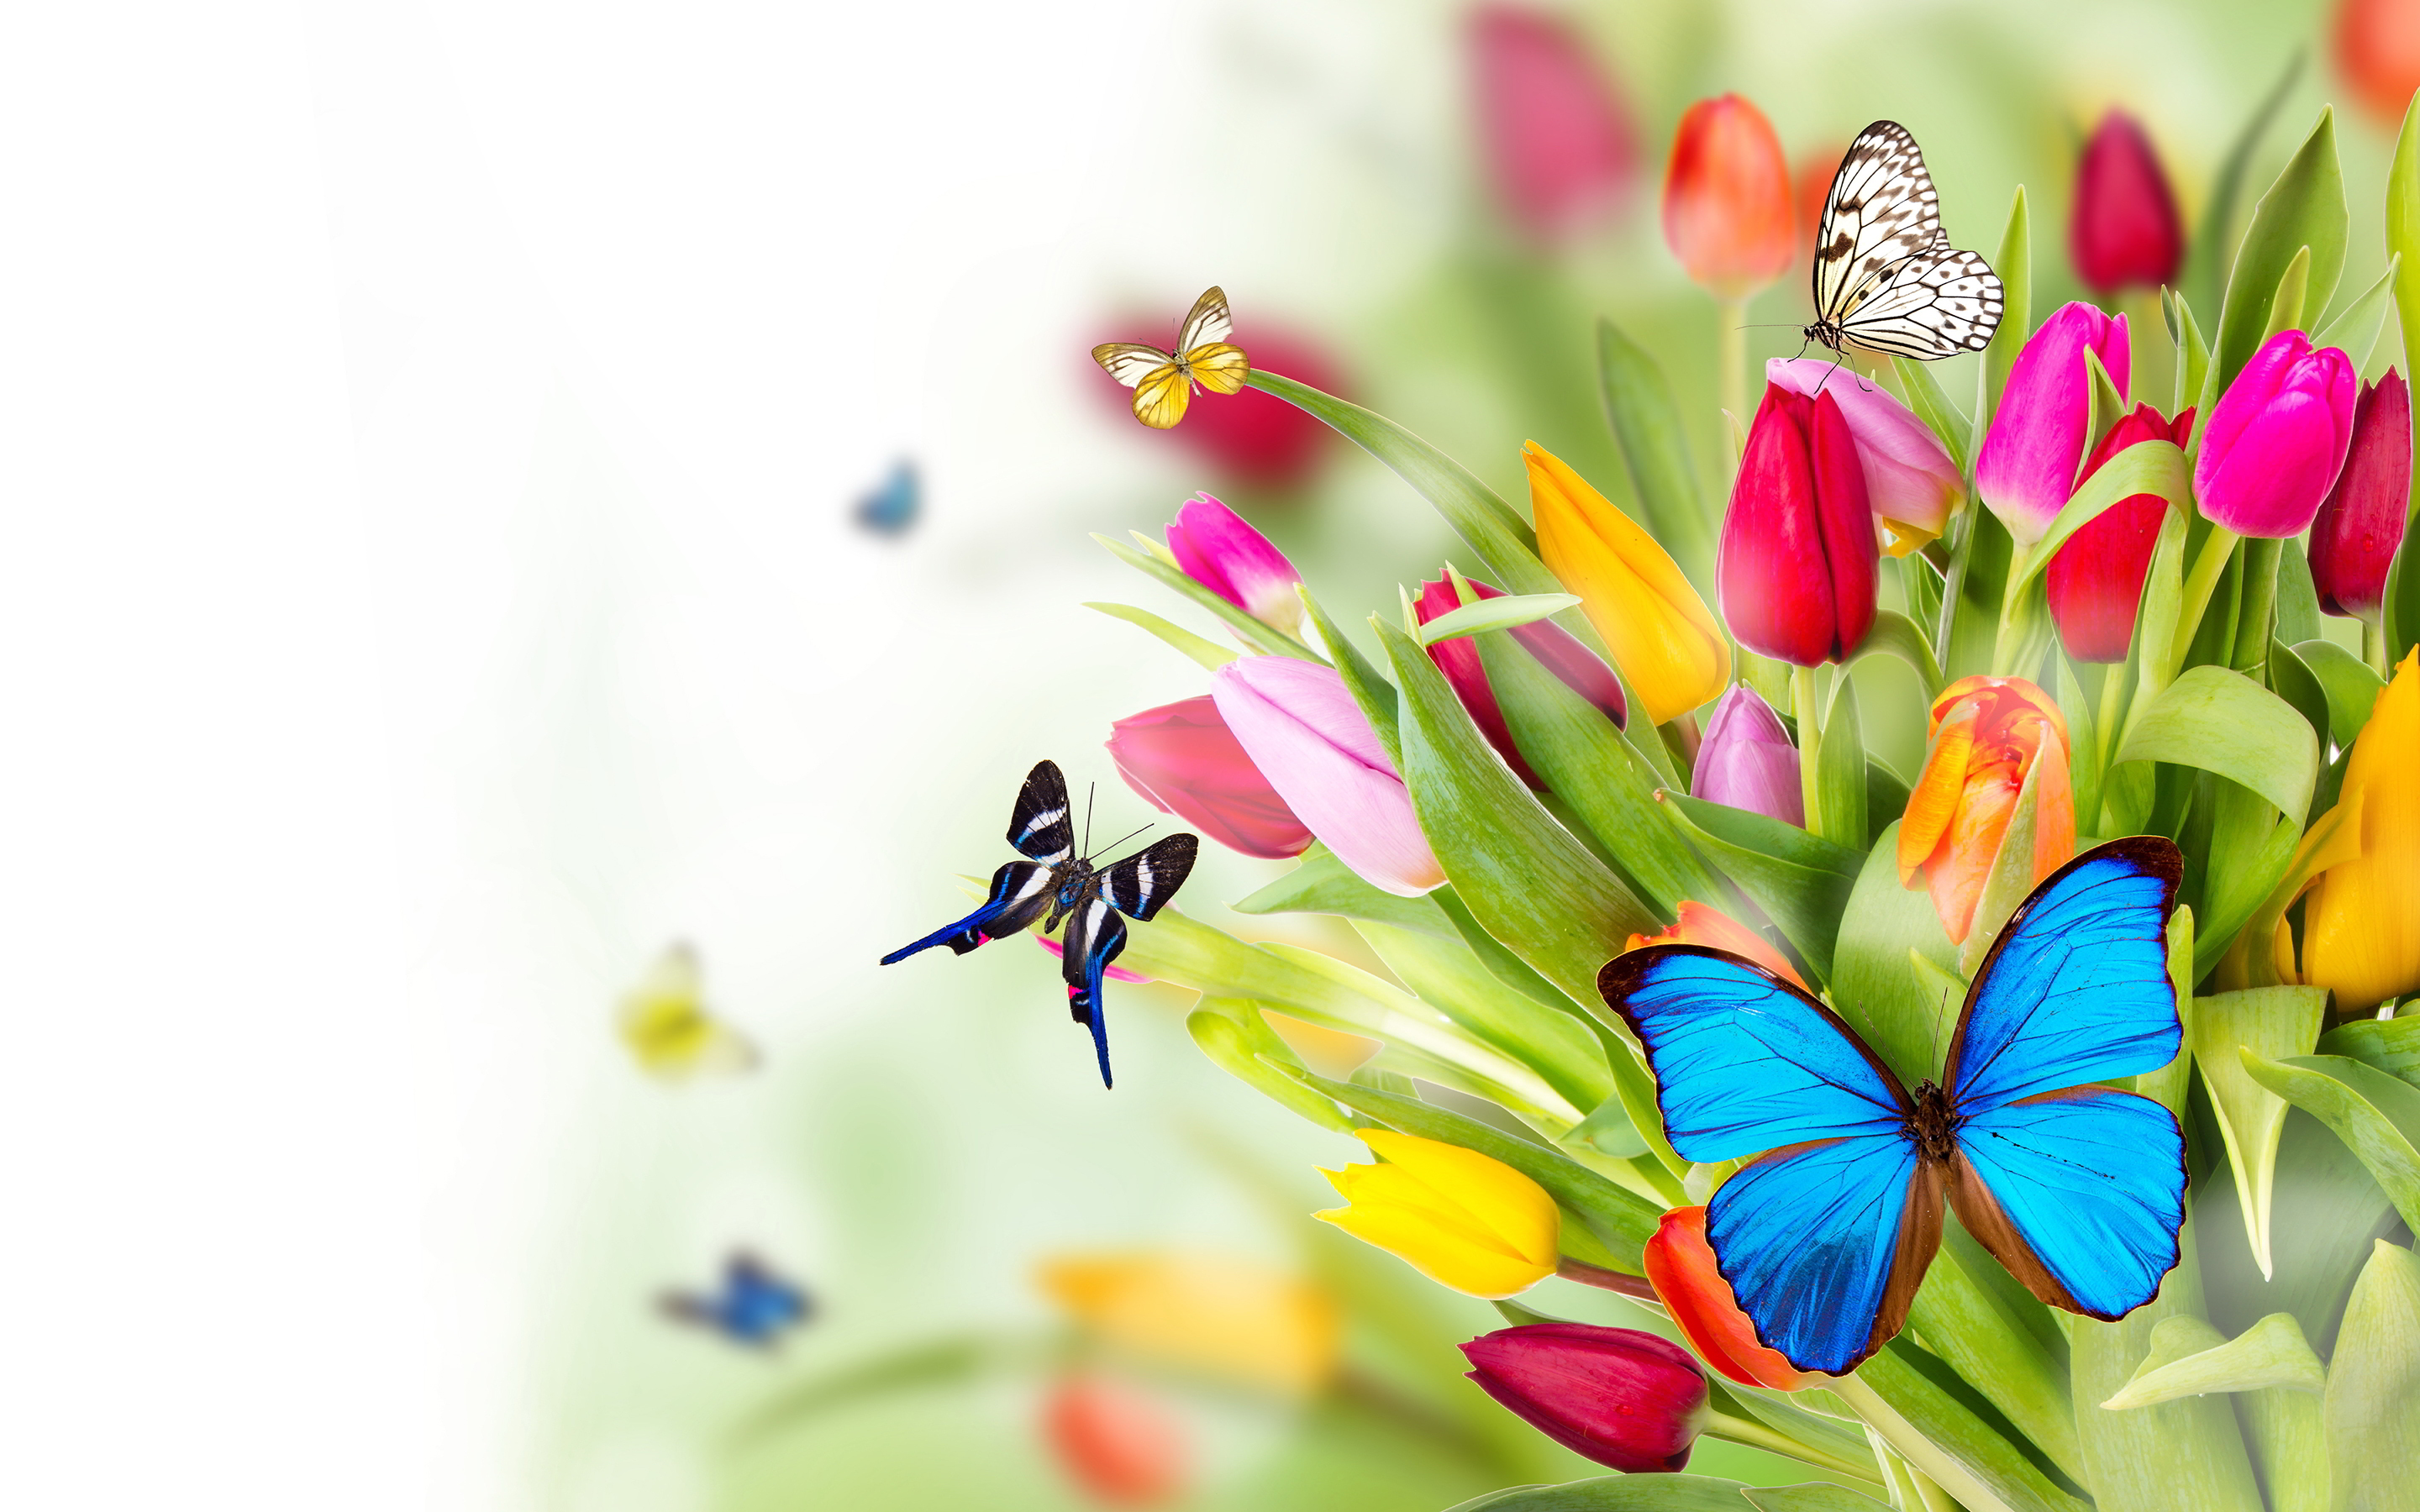 Picture offlowers image free download Flowers in a lot of colors and species image free download